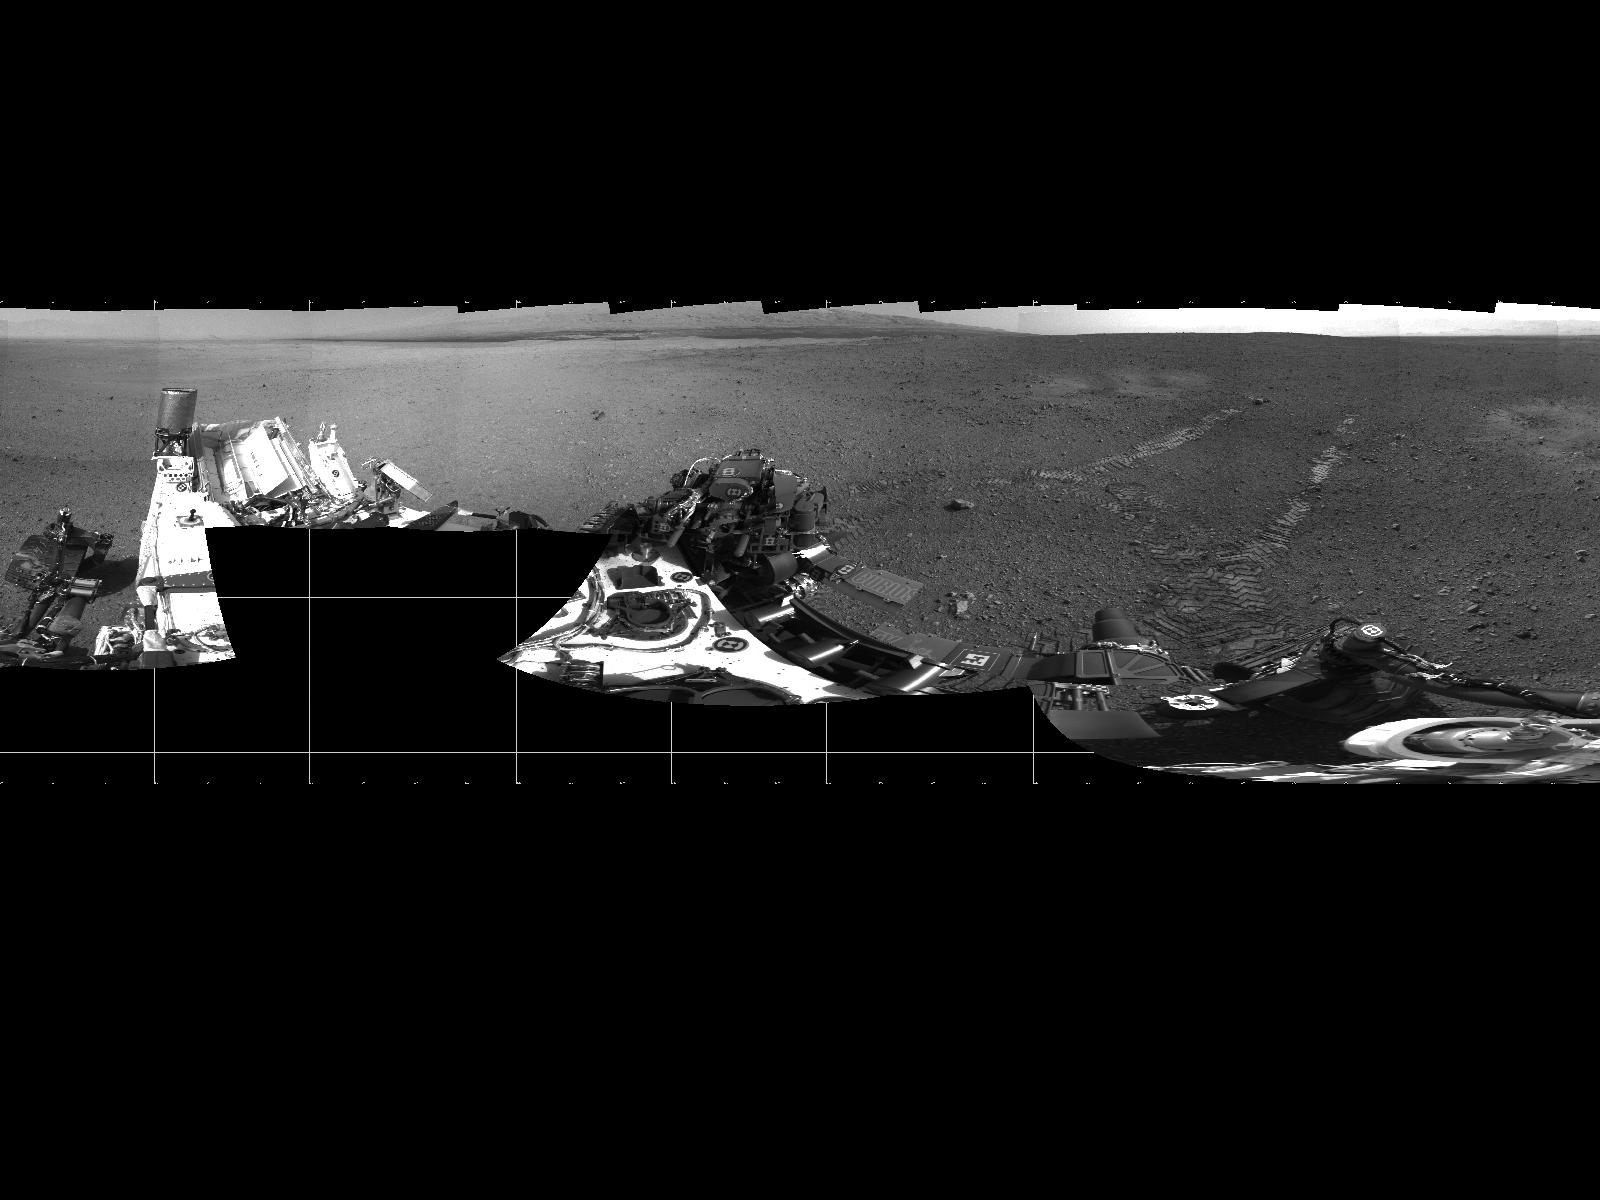 Mars Rover Curiosity: 1st Drive Panorama